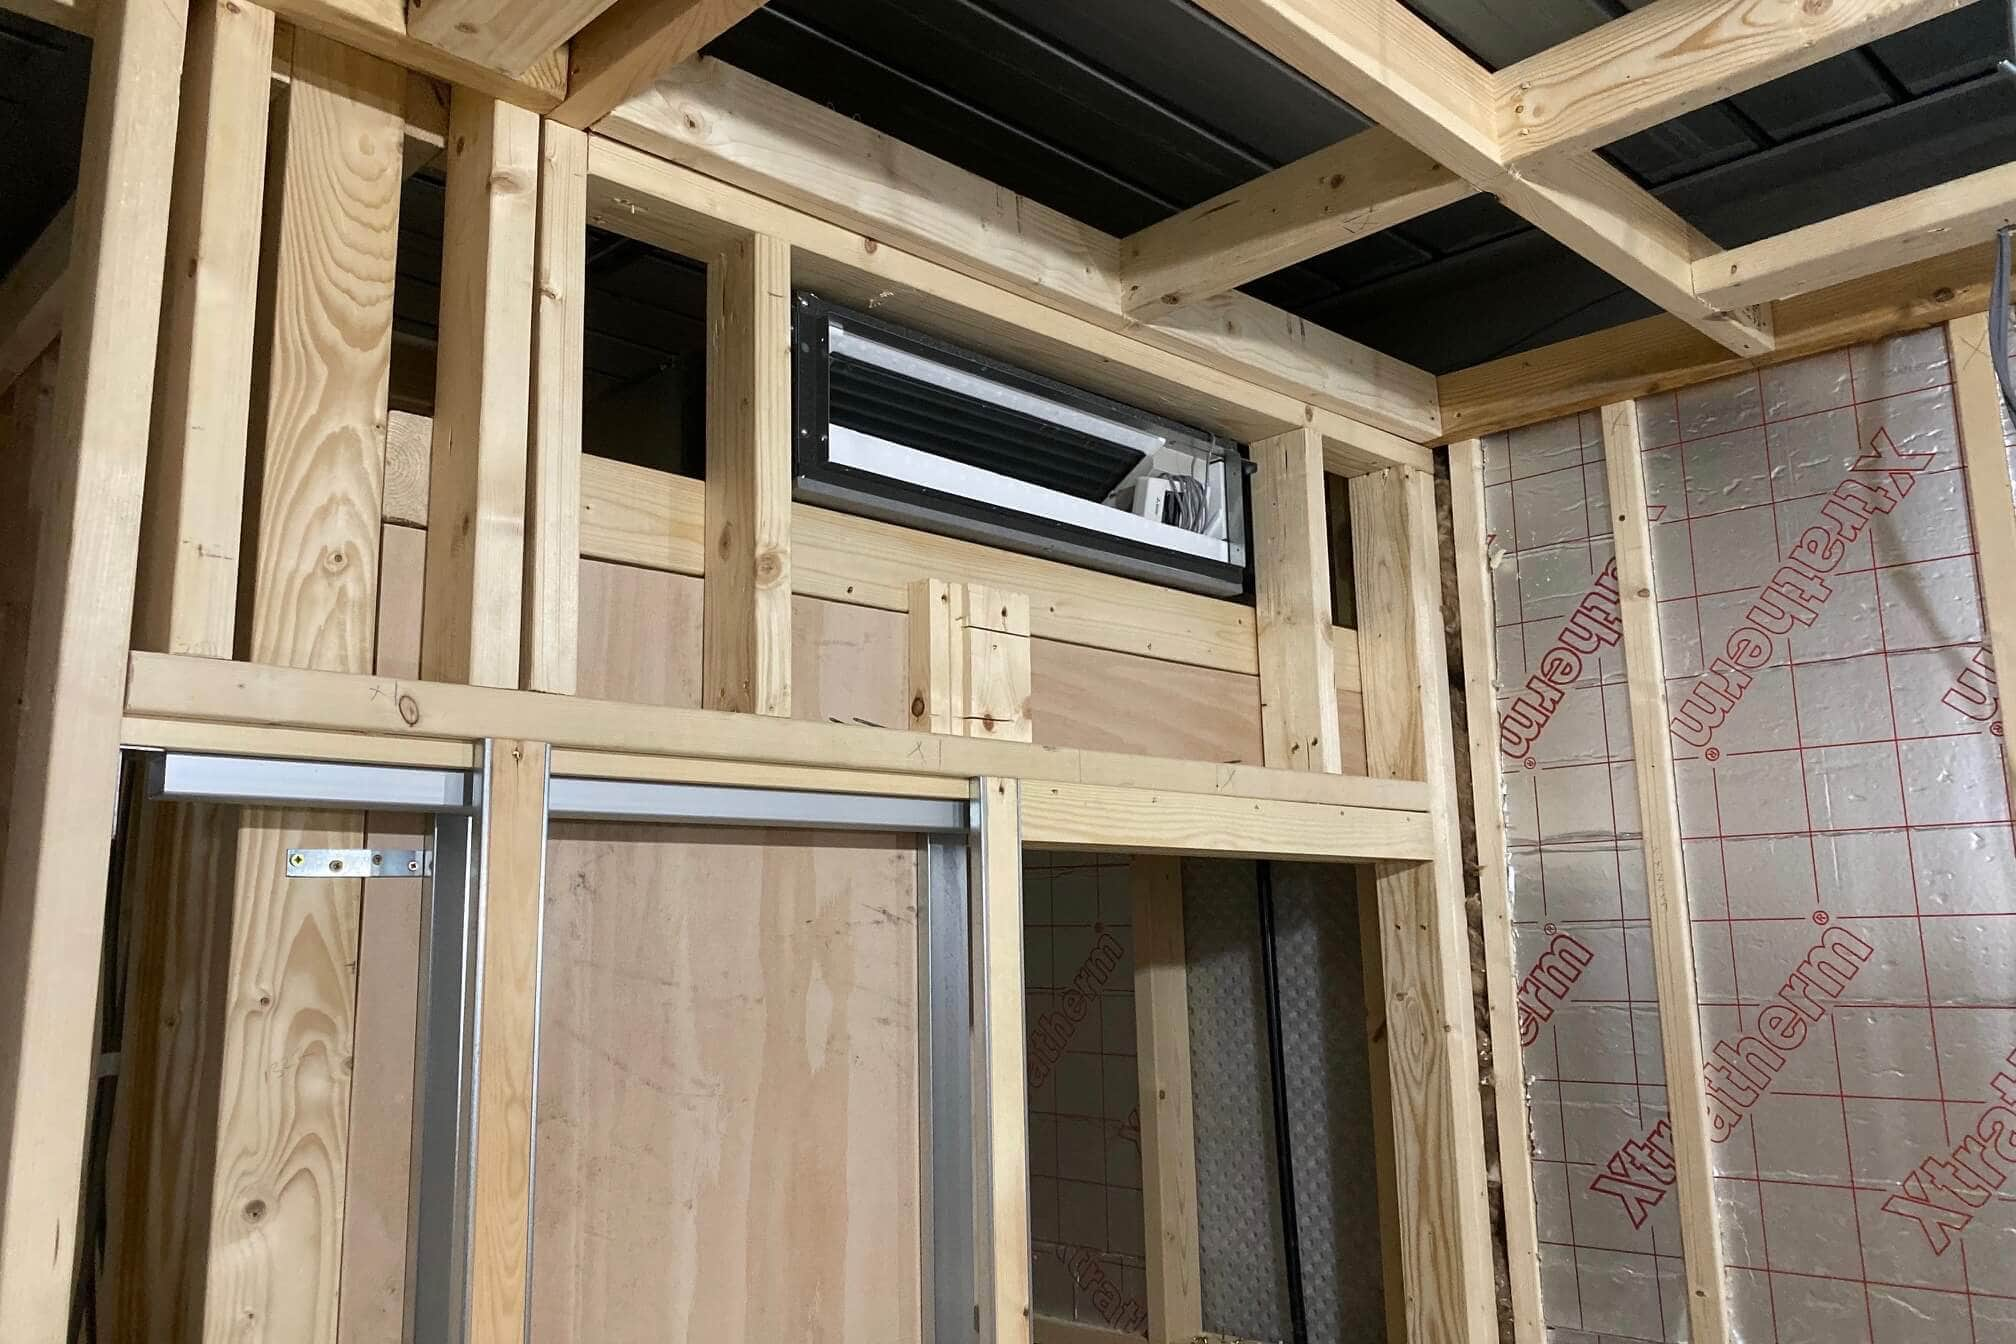 Chelsea developer property SubCool air con installation concealed unit above door building work